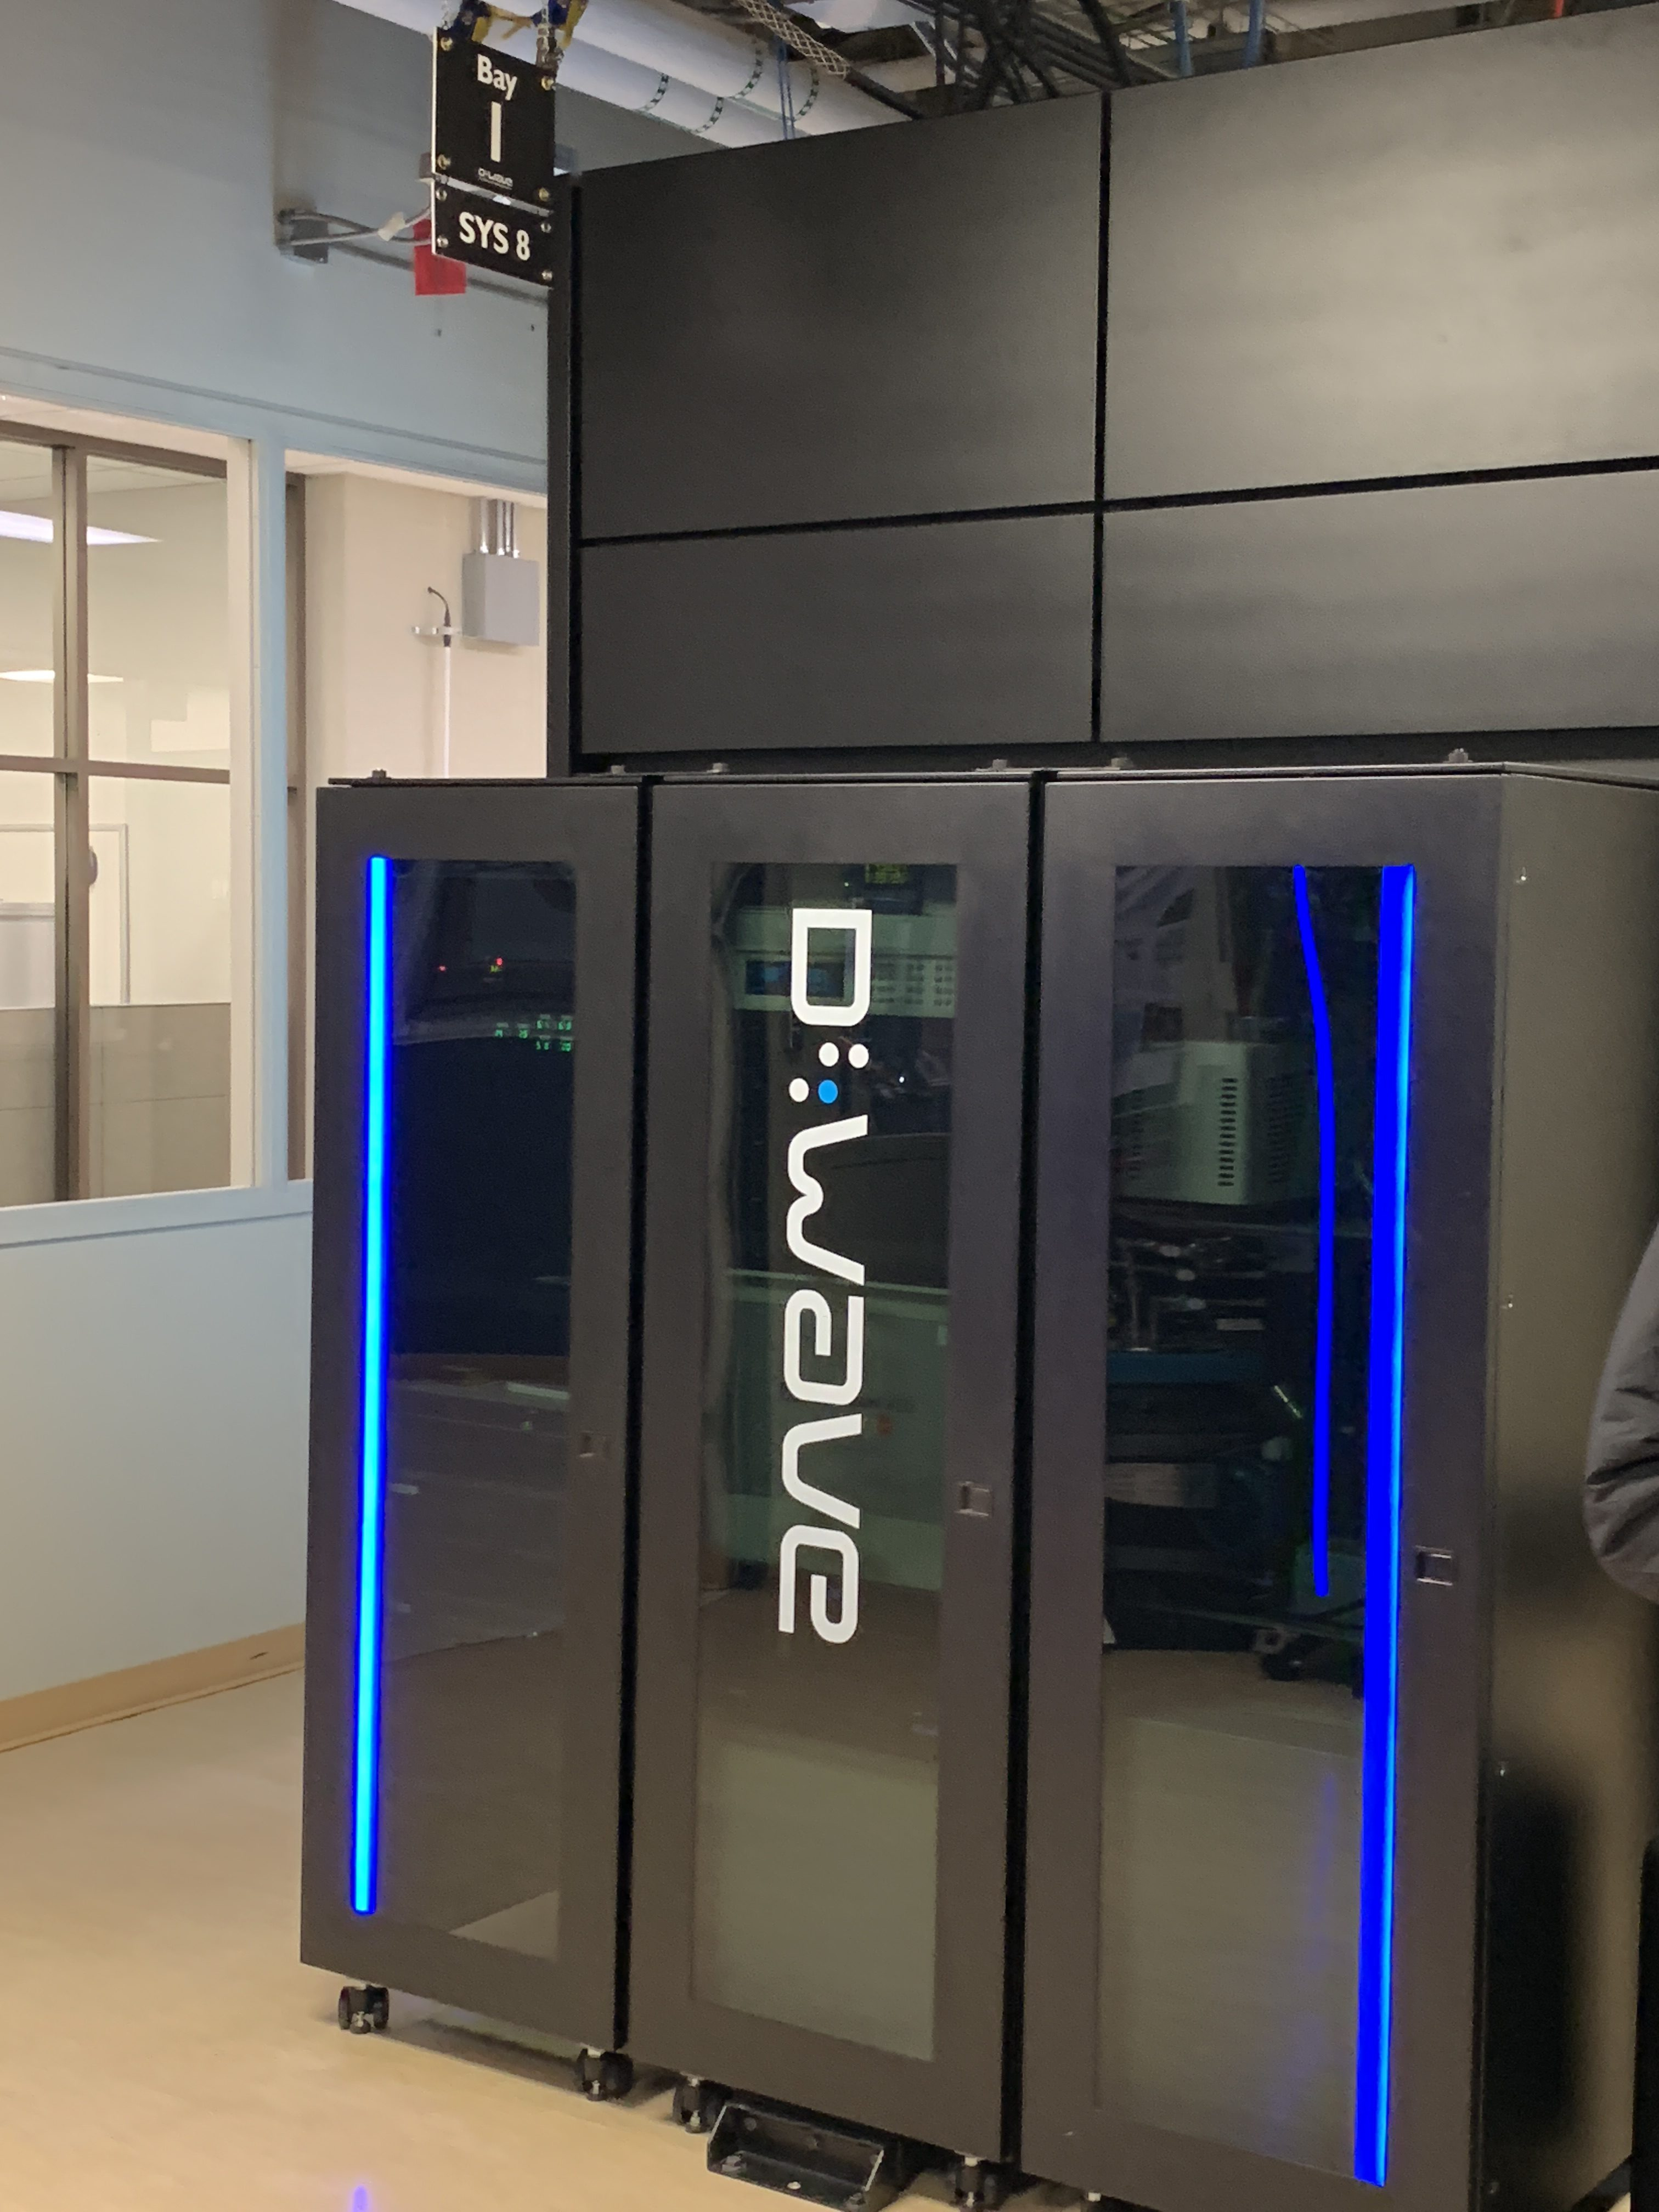 D-Wave offers the first public access to a quantum computer